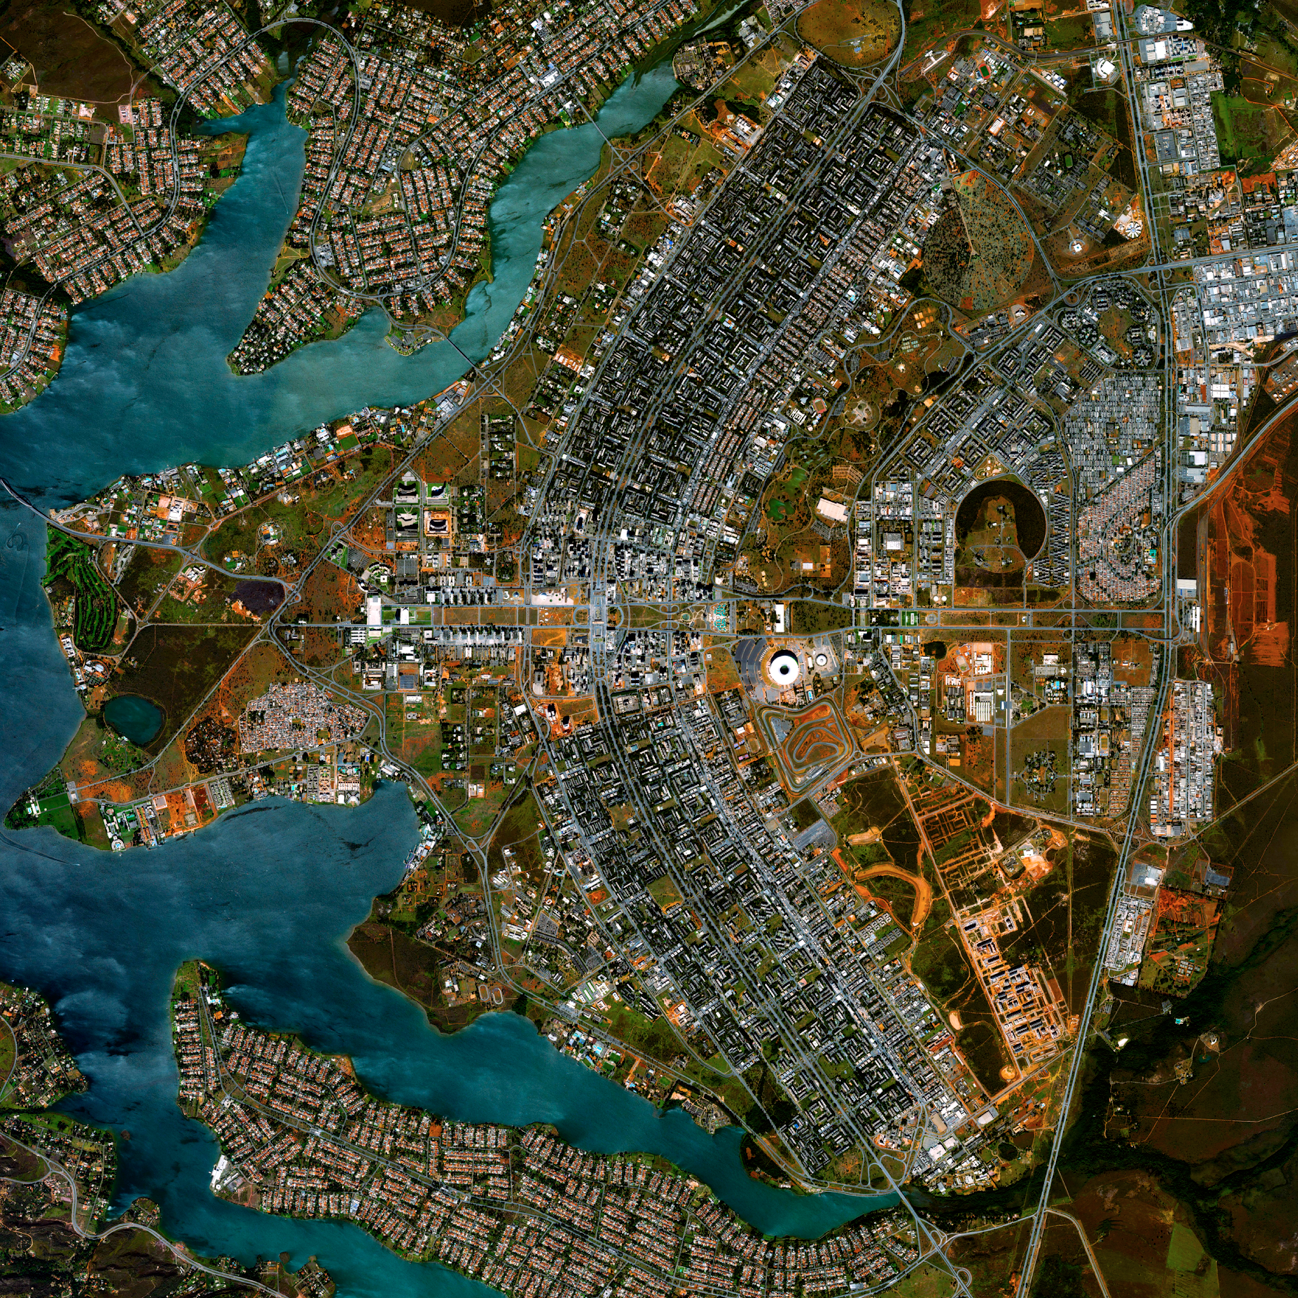 5/1/2015   Brasilia Urban Plan   Brasilia, Brazil  15°47′38″S 47°52′58″W    Today we've added seven new pieces to our  Printshop , including this Overview of the urban plan of Brasilia. The city was founded on April 21, 1960 in order to move the capital from Rio de Janeiro to a more central location within Brazil. The design - resembling an airplane from above - was developed by Lúcio Costa and prominently features the modernist buildings of the celebrated architect Oscar Niemeyer at its center. To see what else we've added to the Printshop, click the link above.